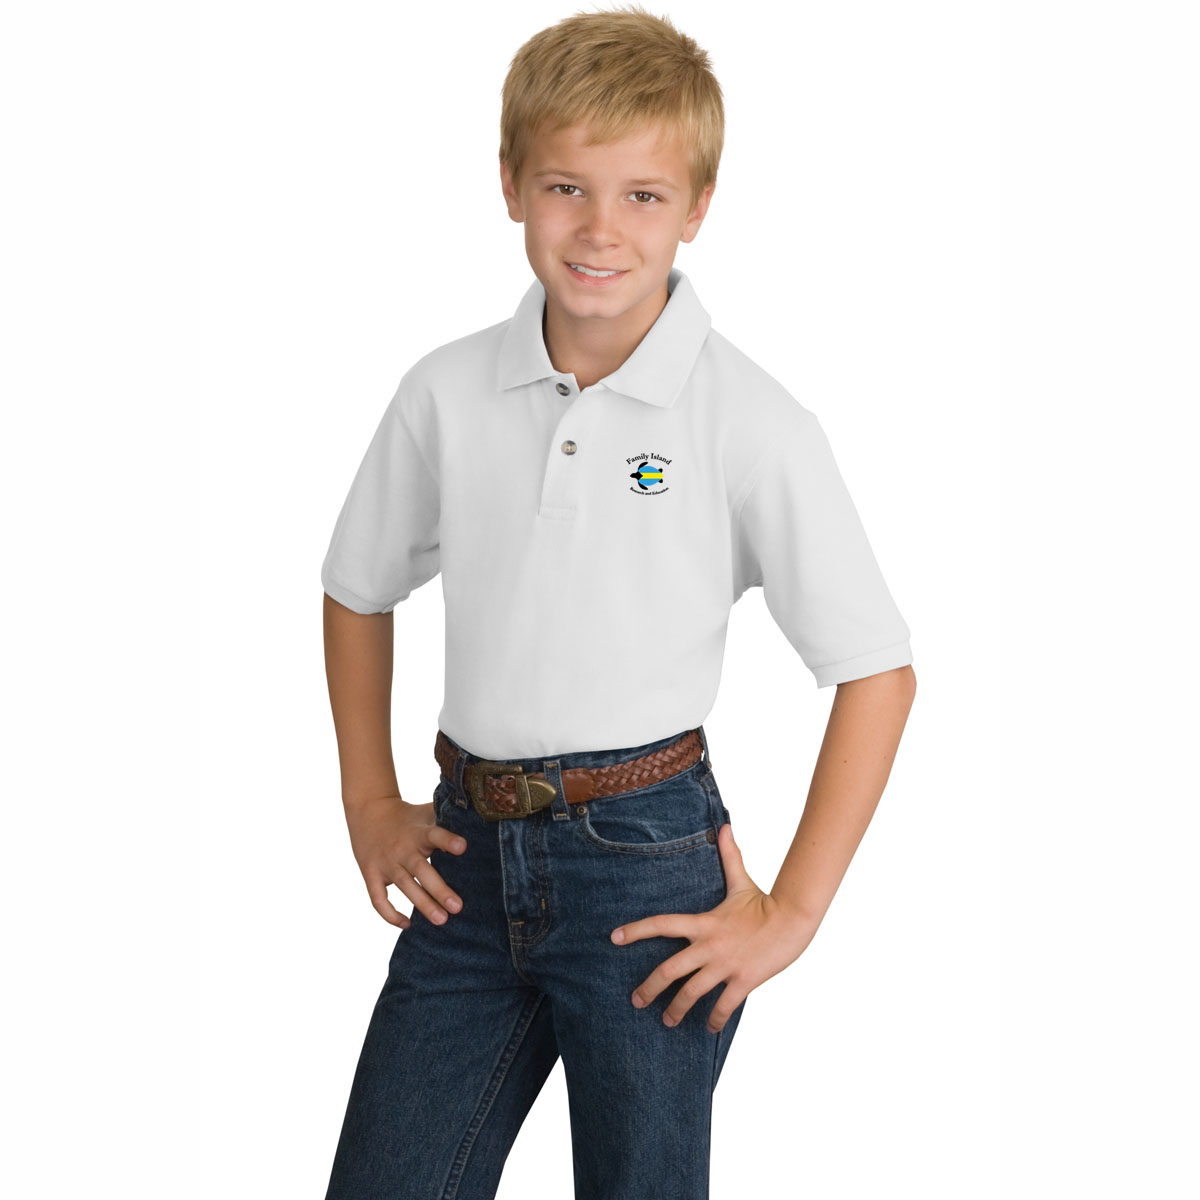 BAHAMAS SEA TURTLE RESEARCH KID'S COTTON POLO